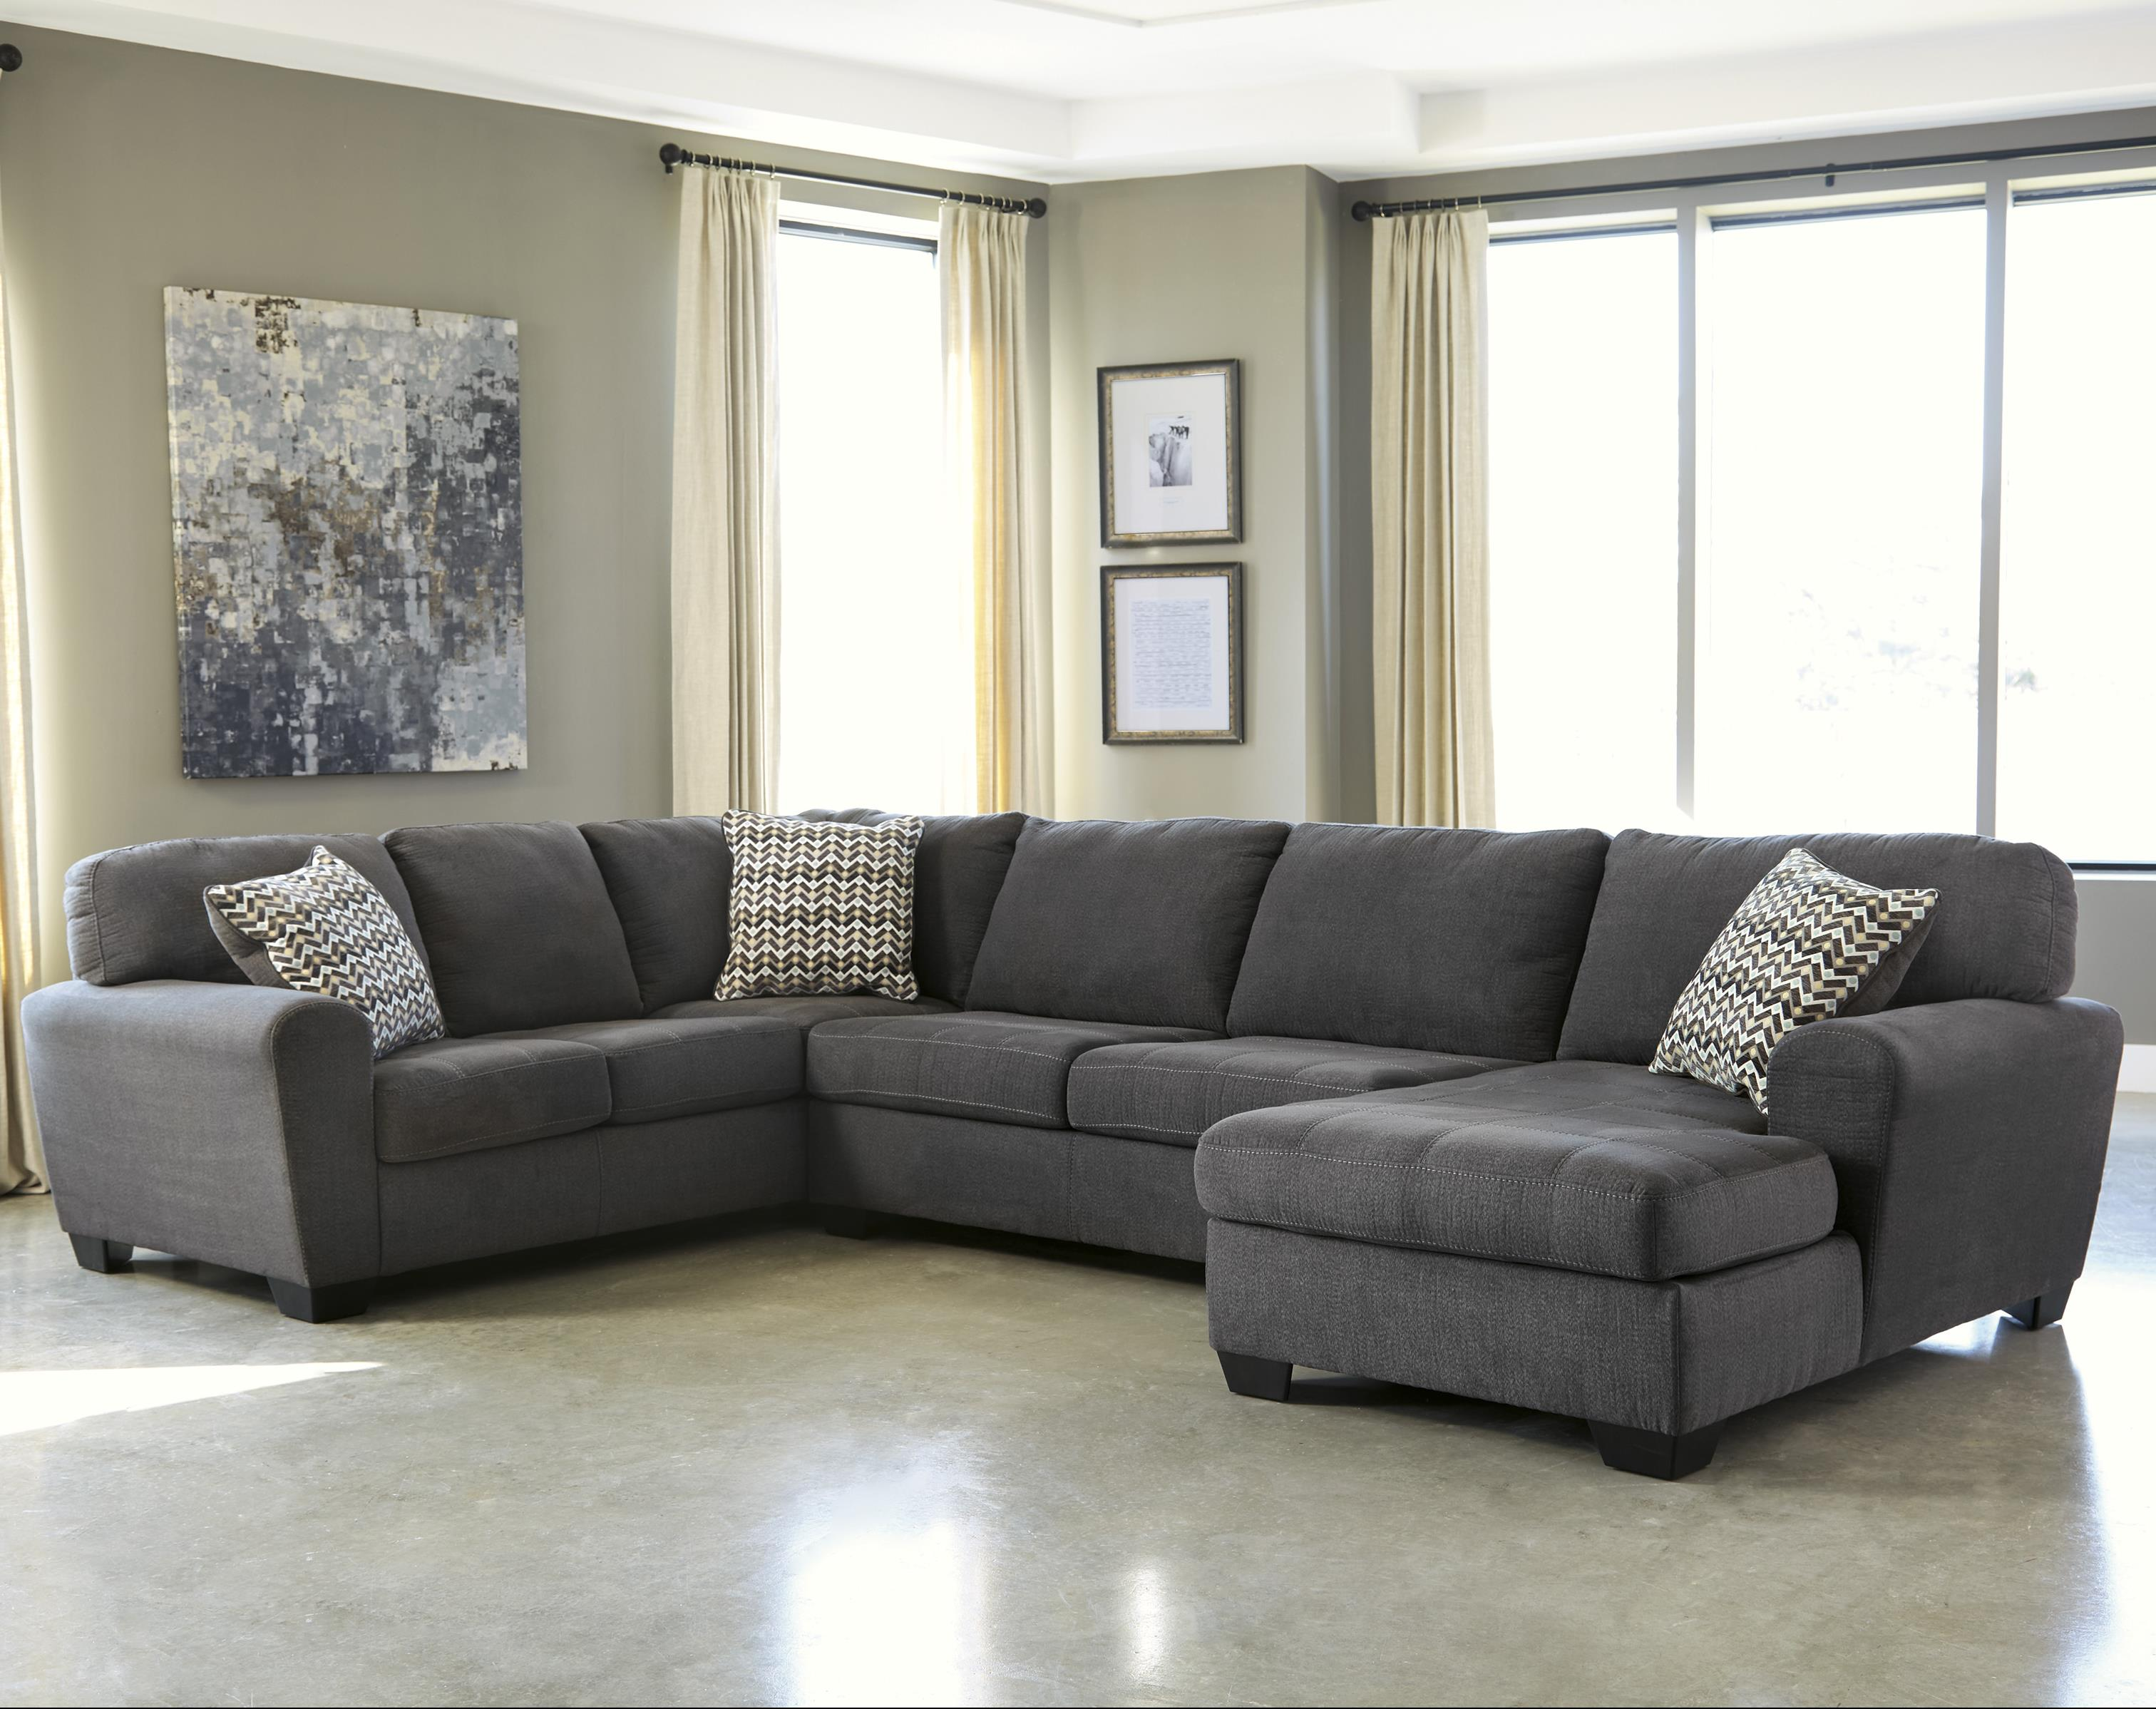 Day furniture – 3 piece sectional sofa